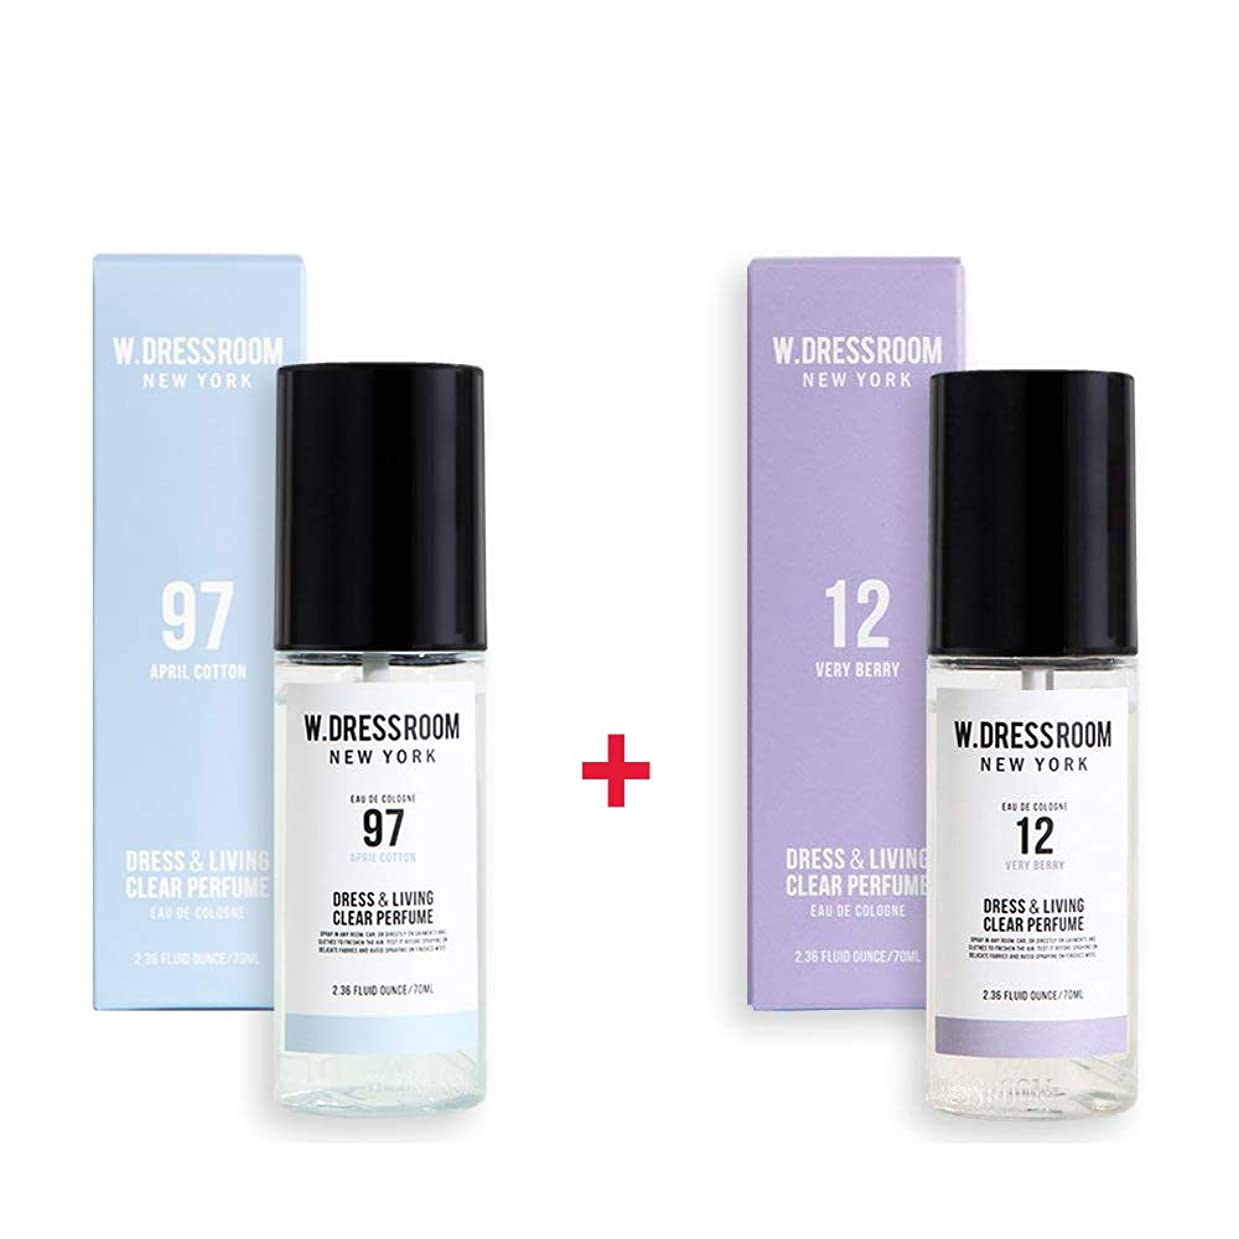 カフェテリア賞賛インペリアルW.DRESSROOM Dress & Living Clear Perfume 70ml (No 97 April Cotton)+(No 12 Very Berry)